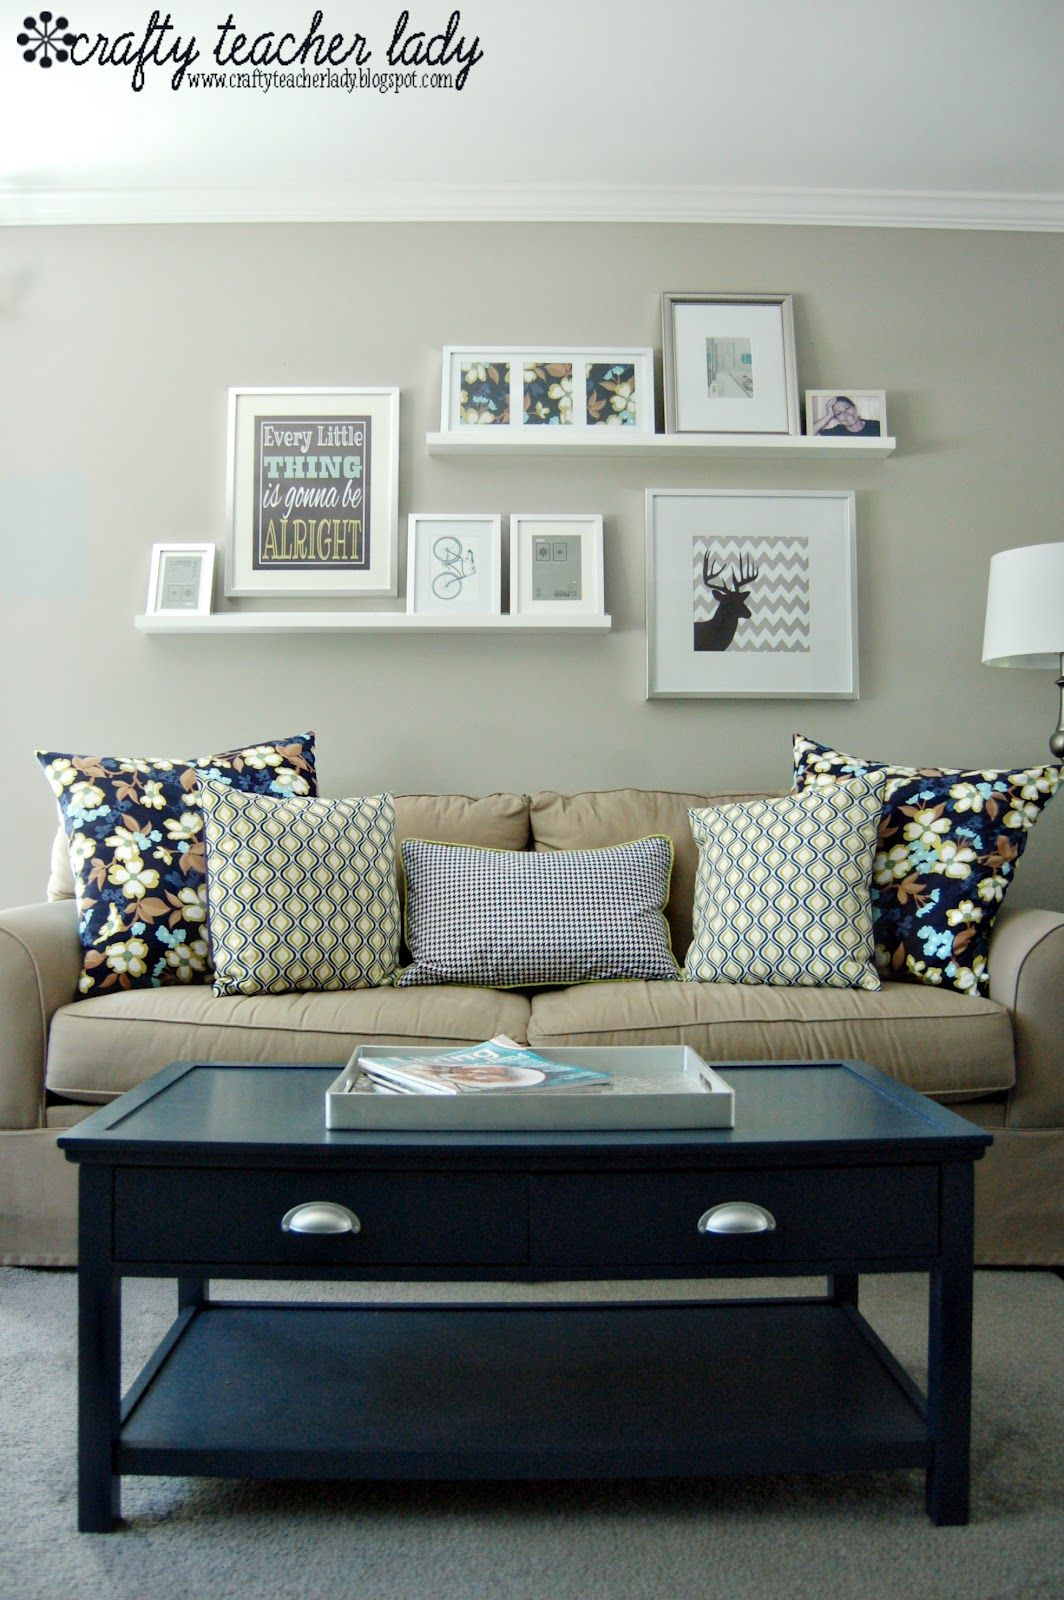 gallery wall above the sofa like floating shelves behind easy way switch out seasonal framed items without having hang them industrial mounted coat rack shelf end supports open